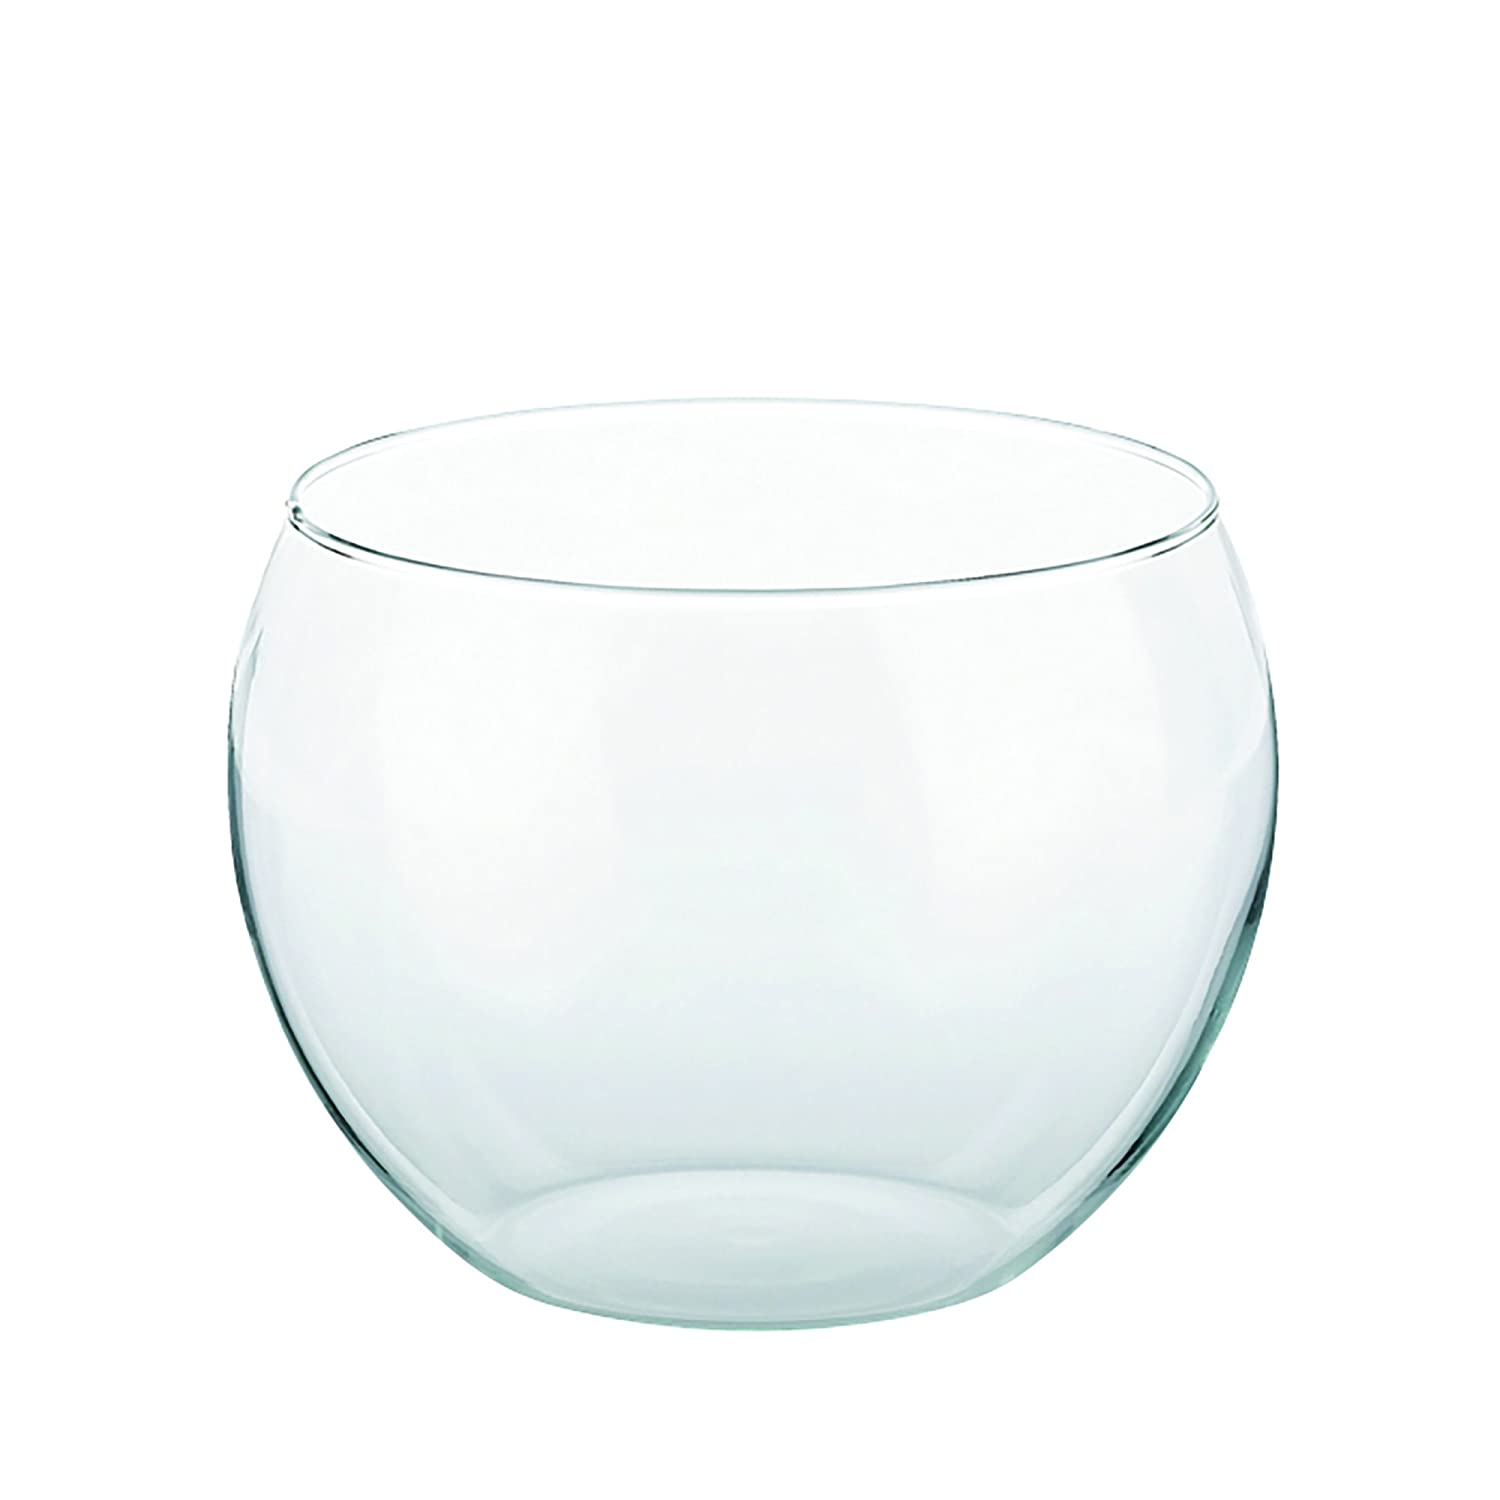 Kela 66164 Glass Punch Bowl 3.5 Litre Capacity